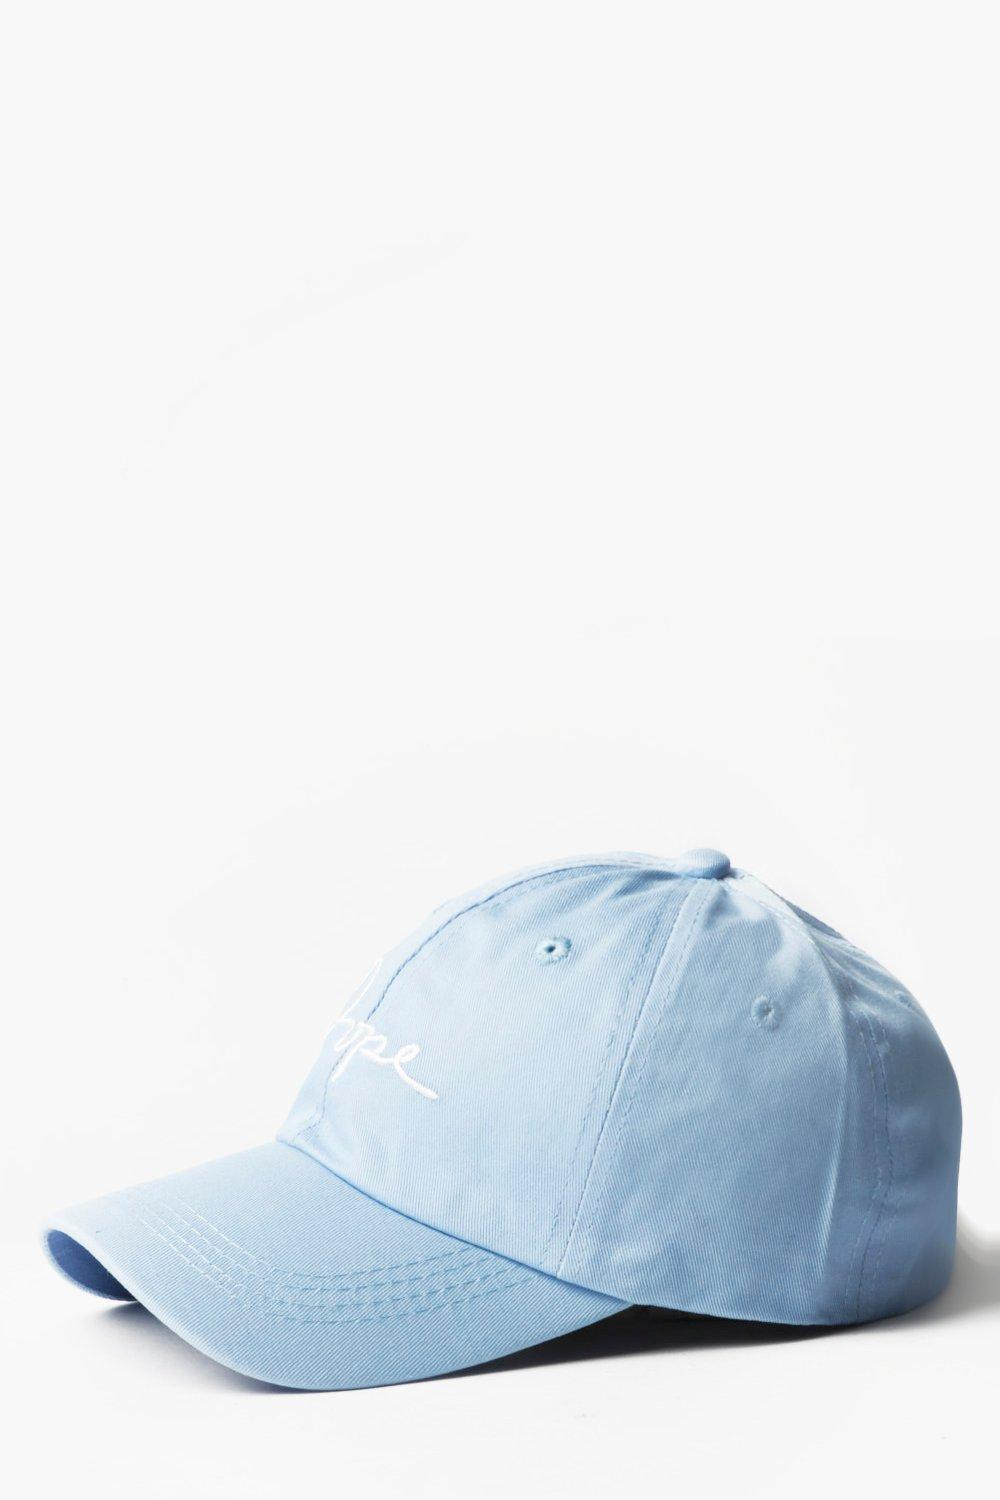 Dope Embroidered Cap - blue - Blue Dope Embroidere